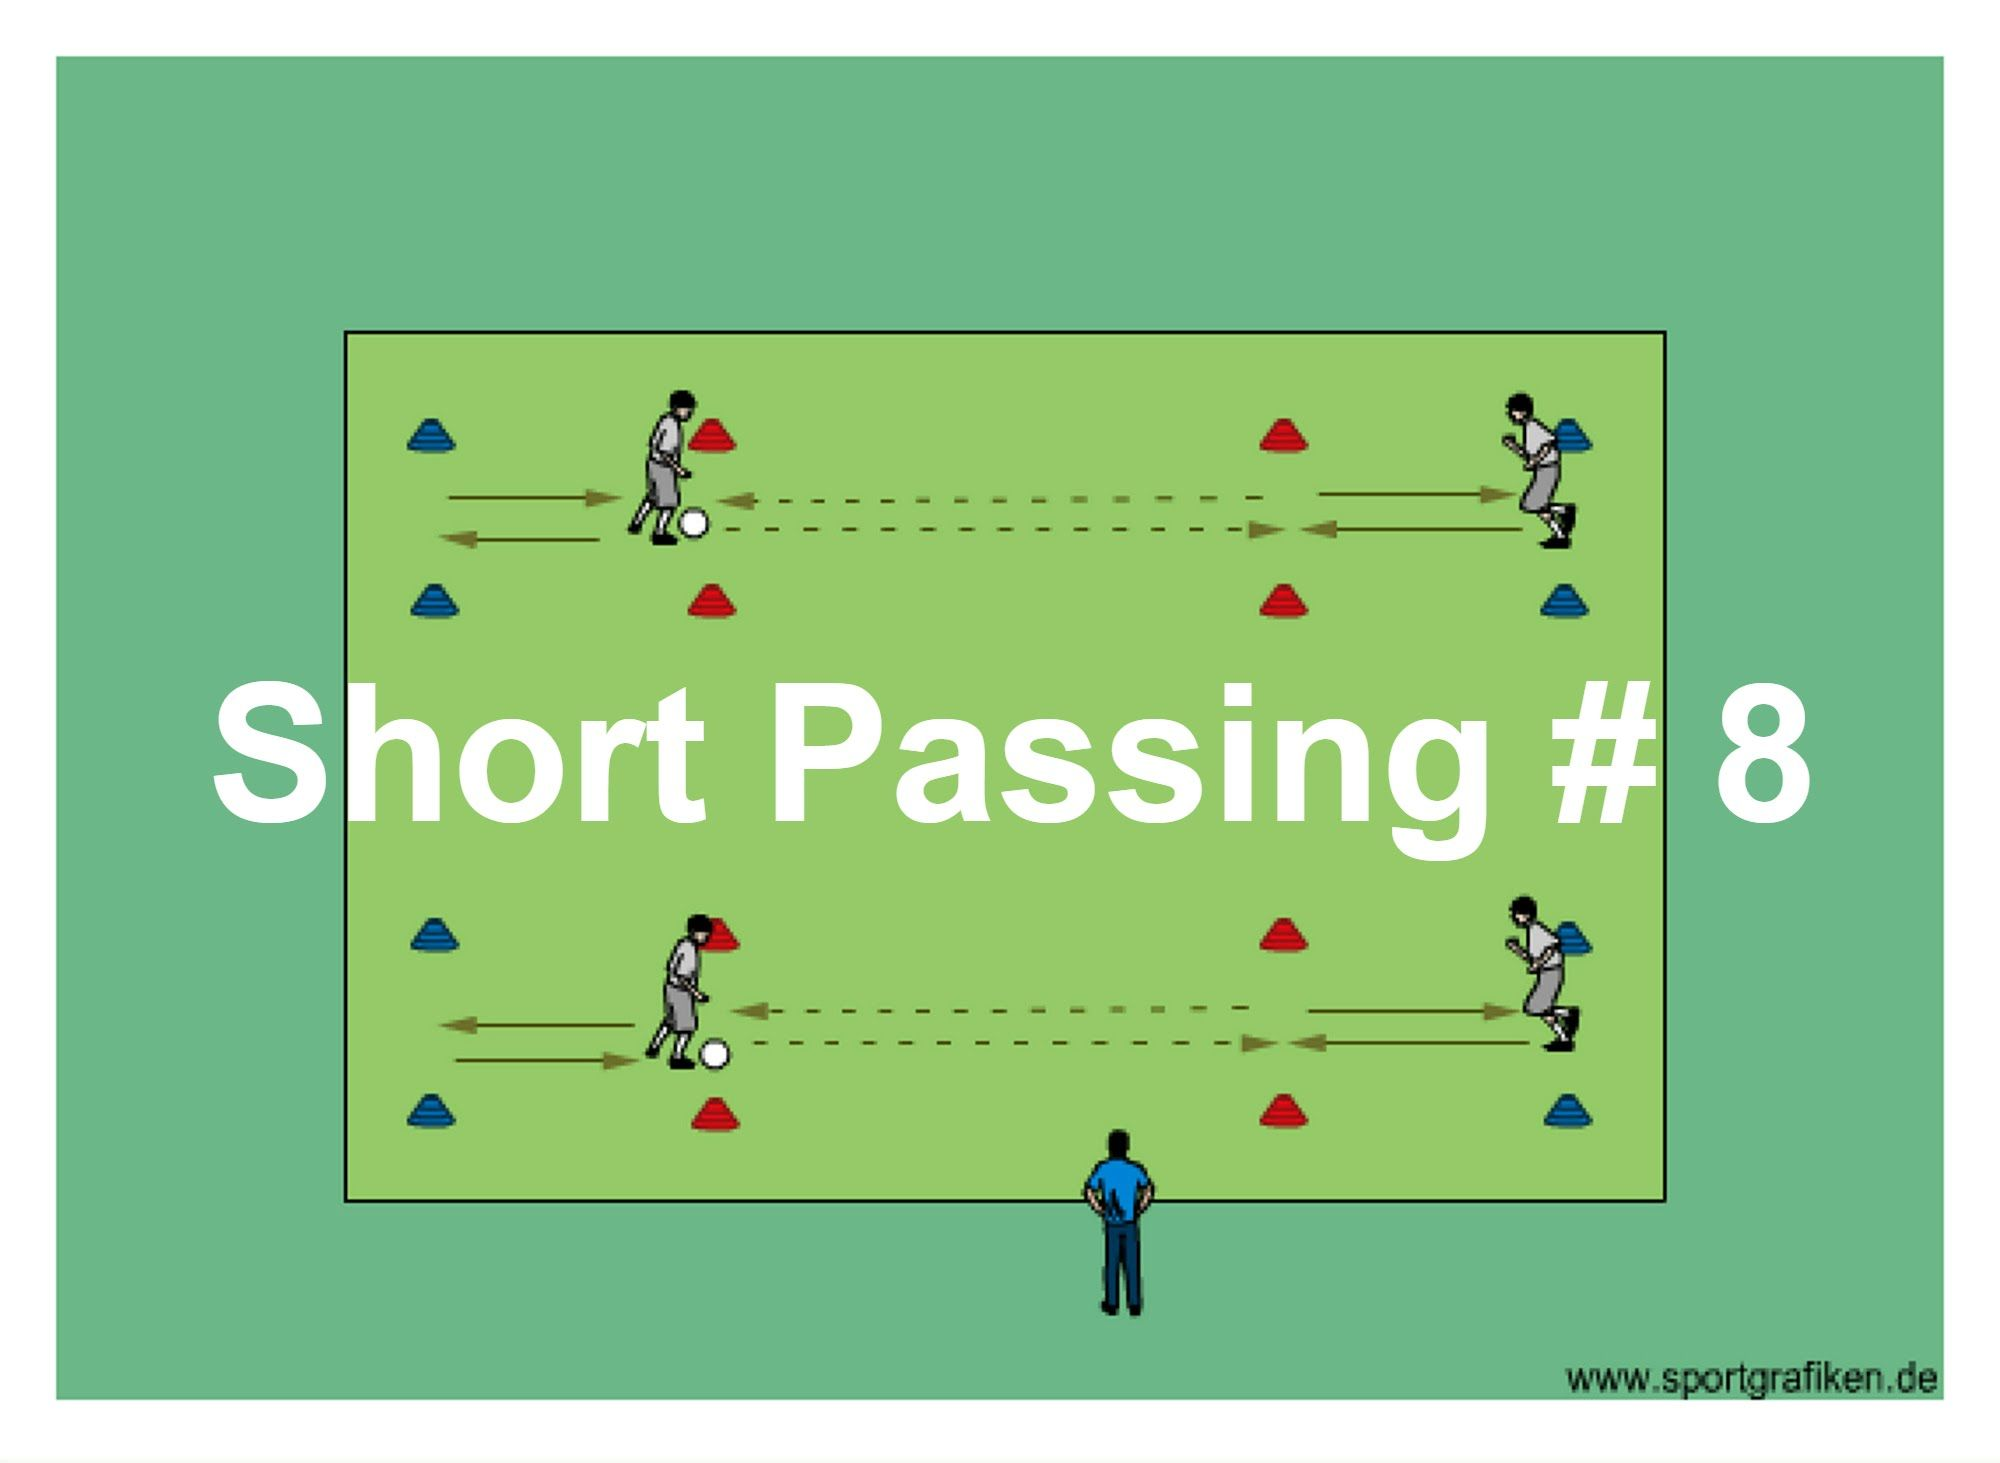 Short Passing 8 Develop Communication Technique Coordination Movement And Receiving Skills Wit Soccer Drills For Kids Soccer Drills Soccer Passing Drills